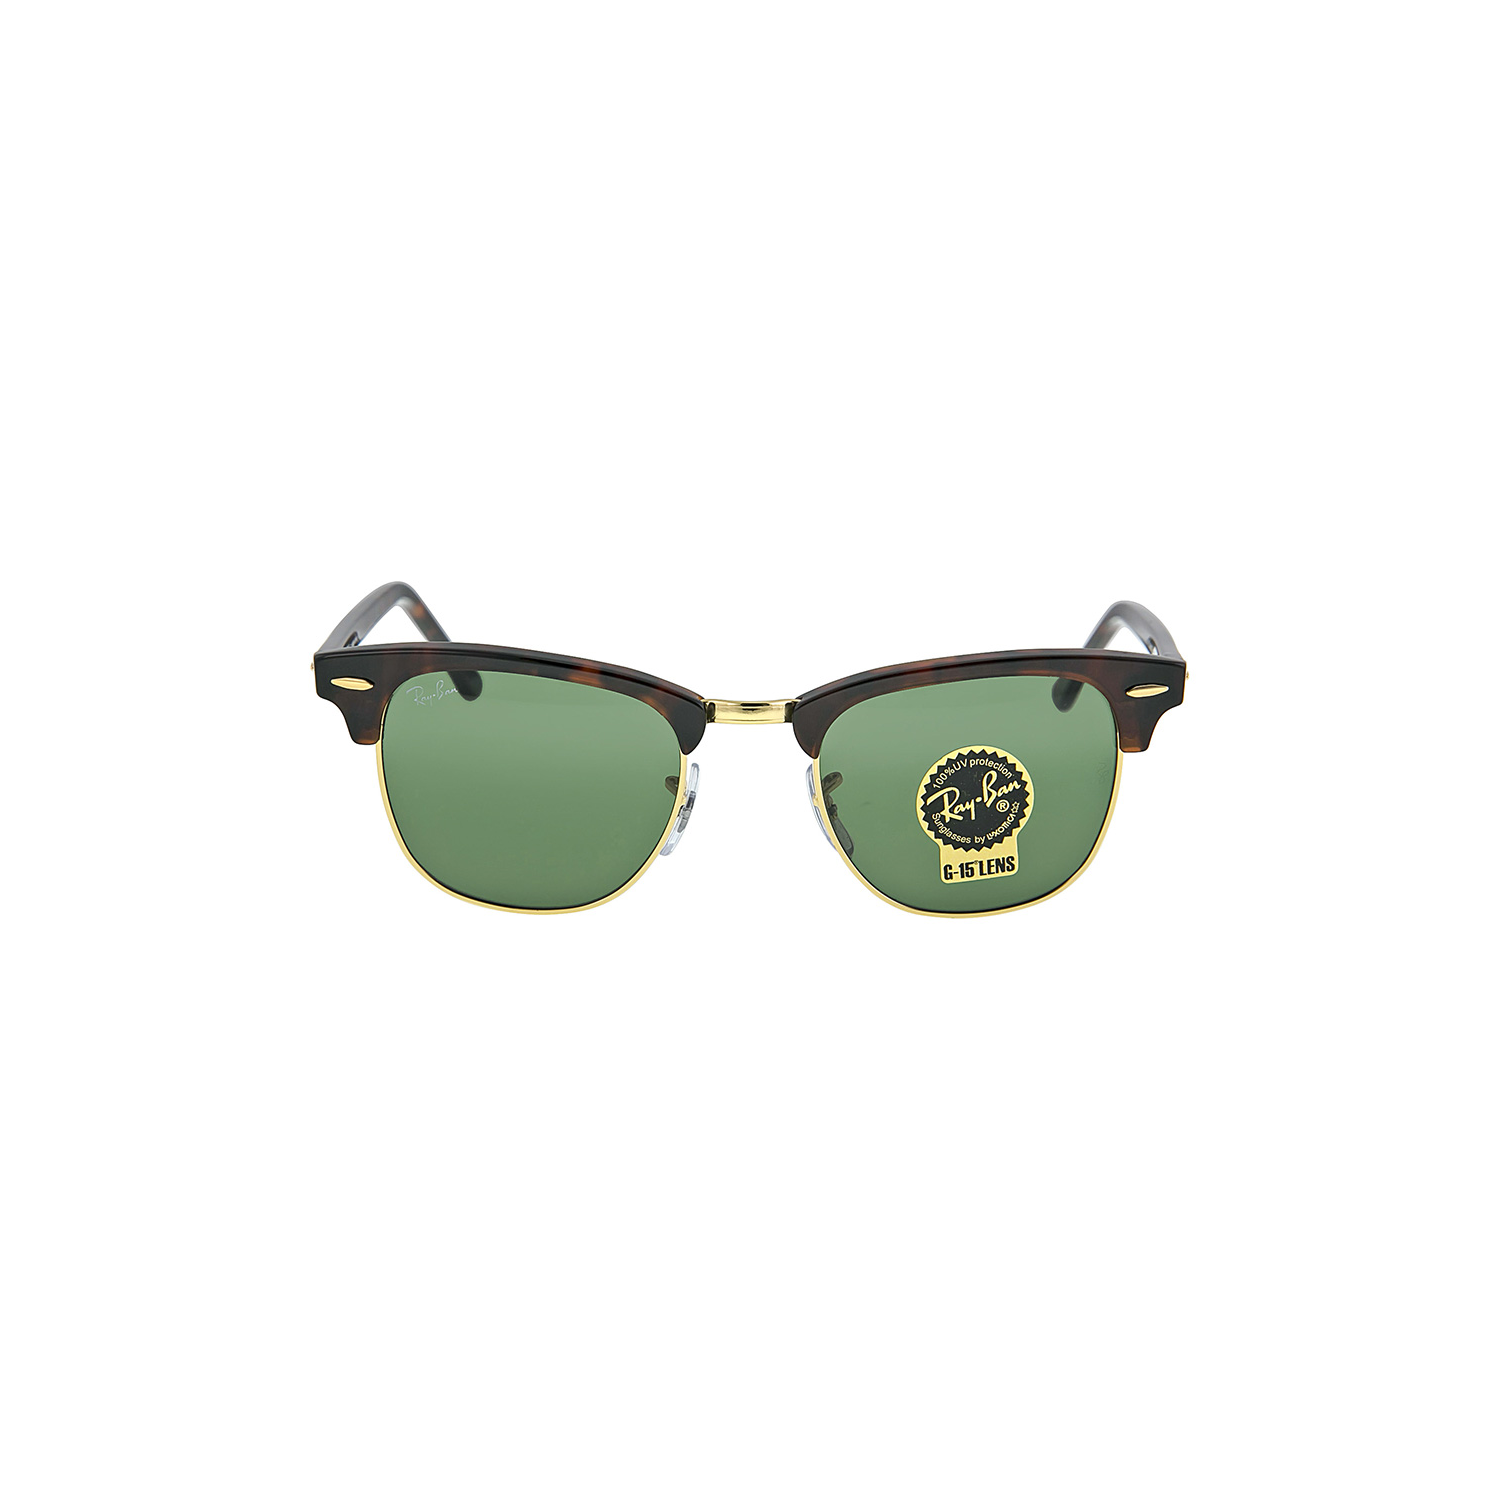 952e896065 Ray Ban Clubmaster Tortoise 49 mm Gunglasses RB3016-W0366-49 - Online Only